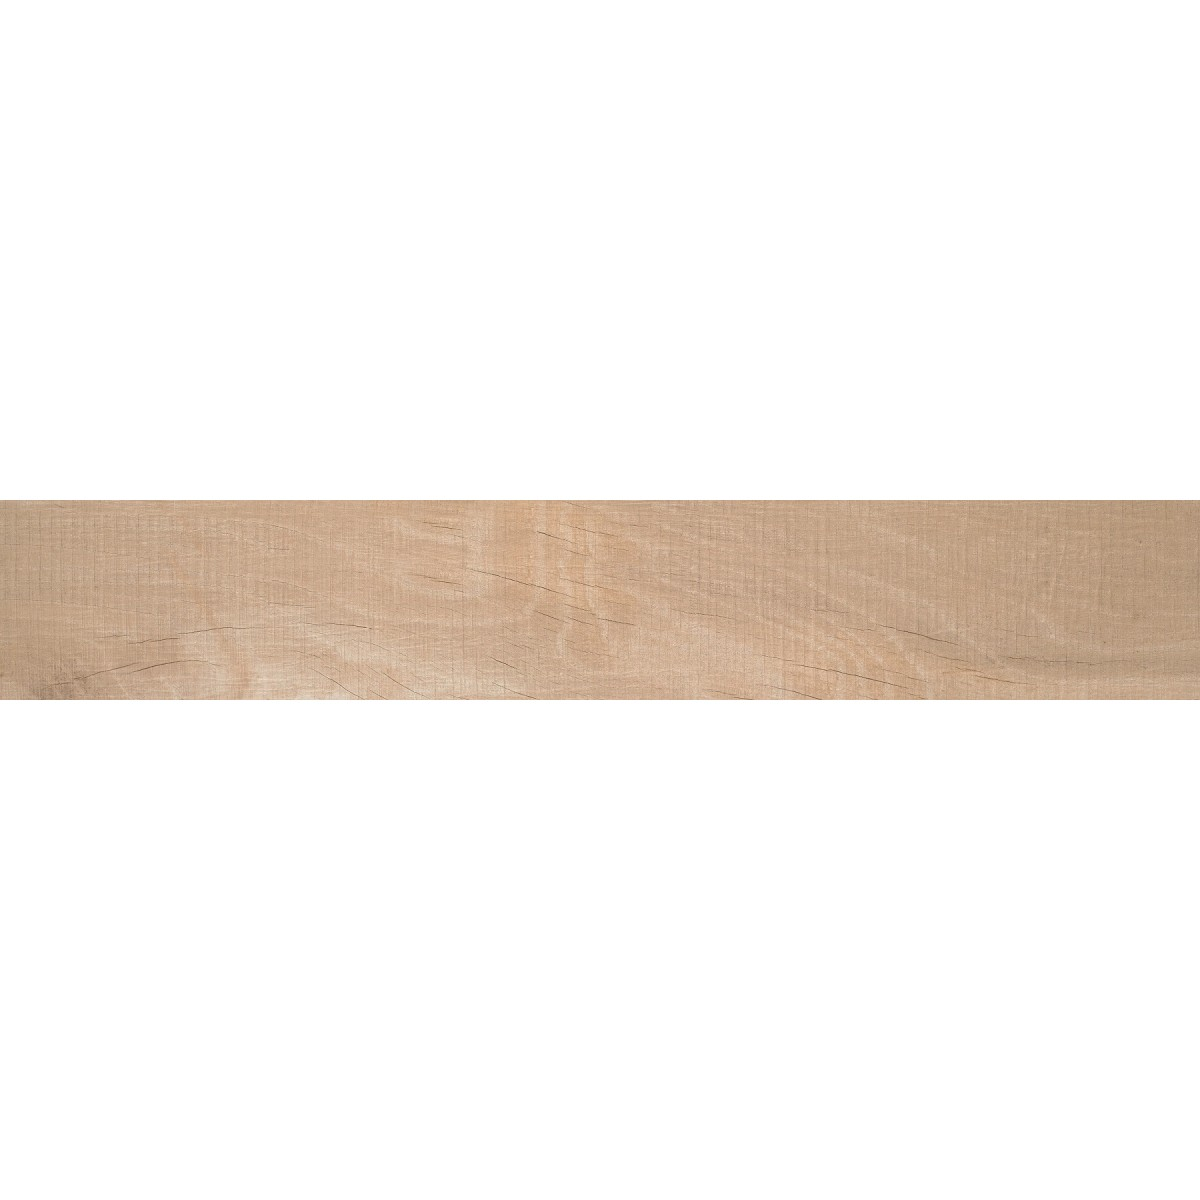 Holzoptik Old Wood, matt, 1200x200x11 mm